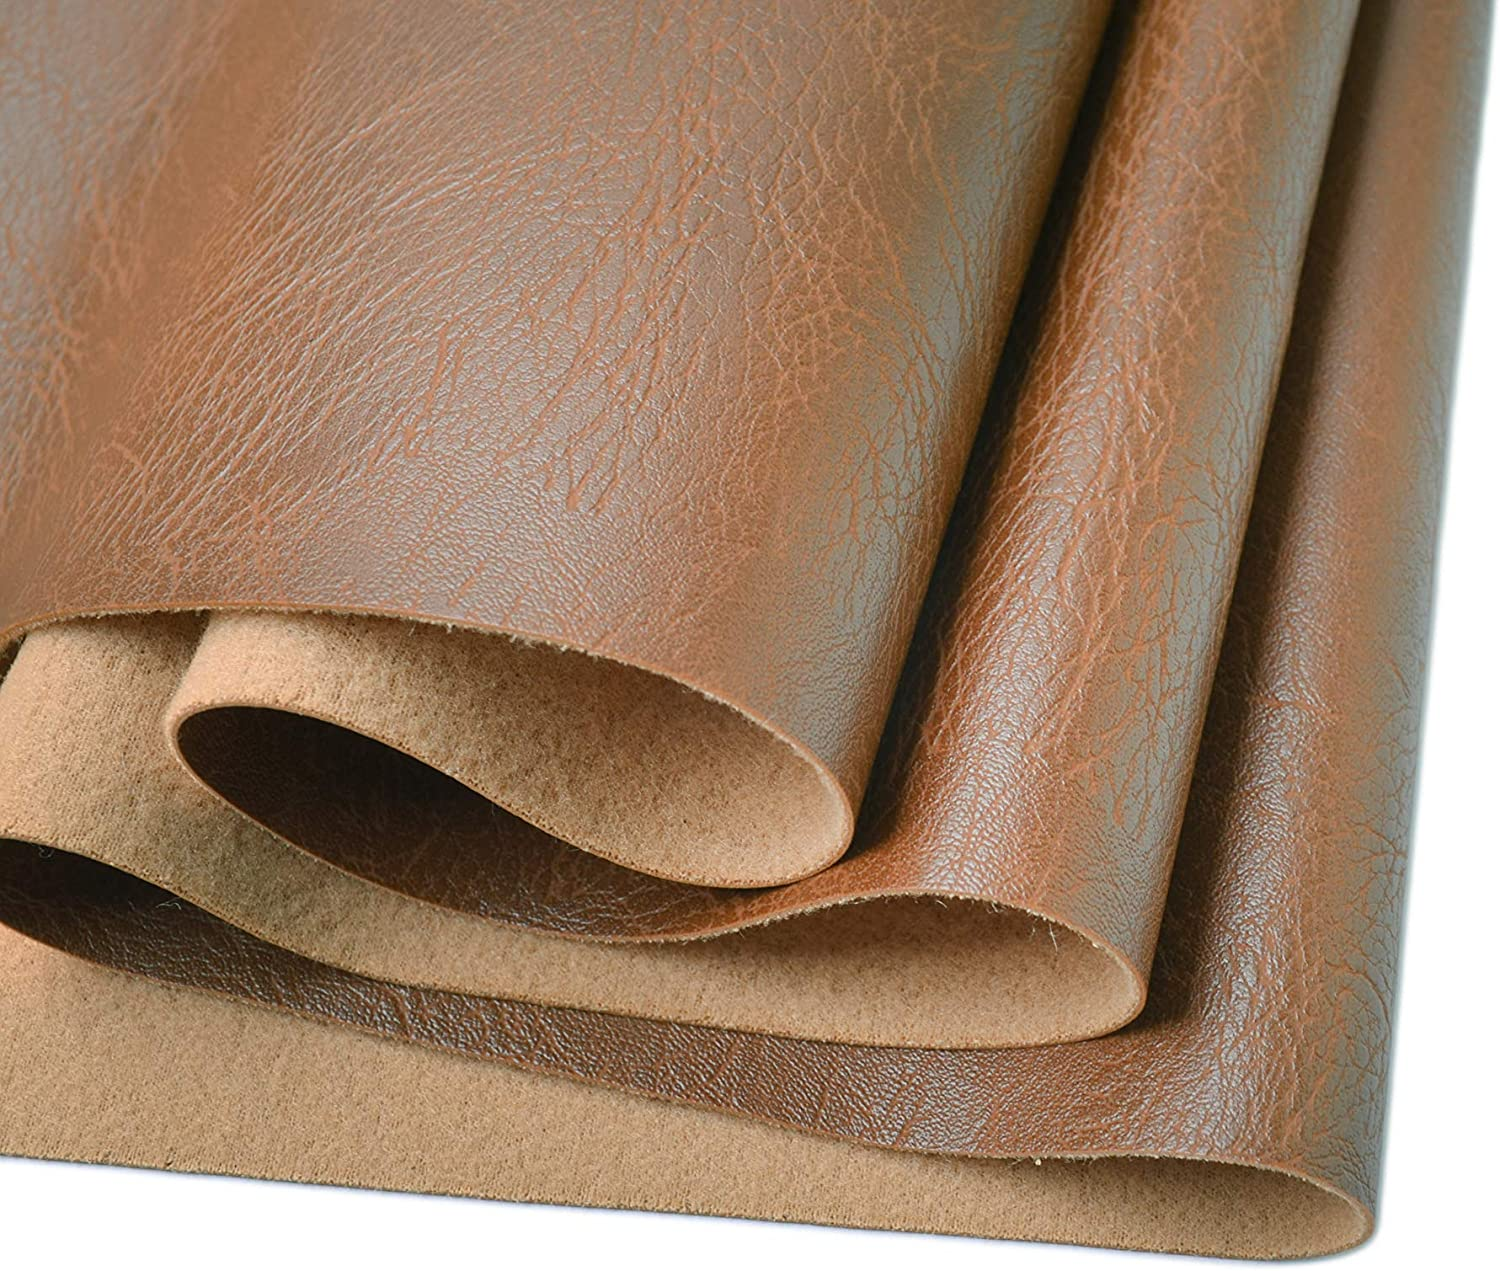 Wento Thick 1 Yard Faux Leather Fabric Soft Skin Grain PU Leather Fabric for Furniture Cover Reupholster Sofa Chairs Cushiones Vinyl Upholstery Fabric (1yard,Camel Tan)